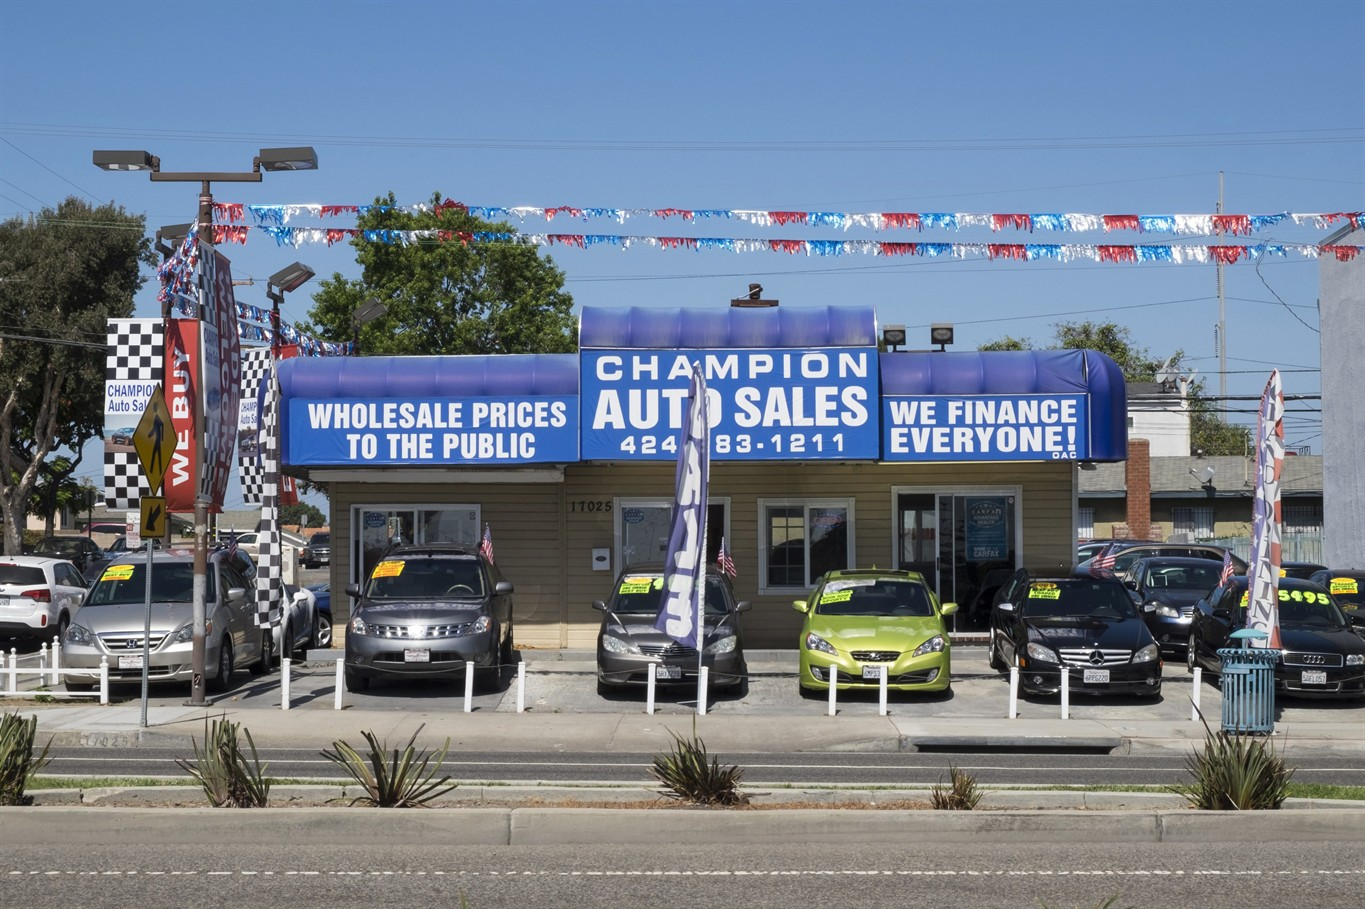 Used Car Lots >> What You Need To Know About Independent Used Car Lots